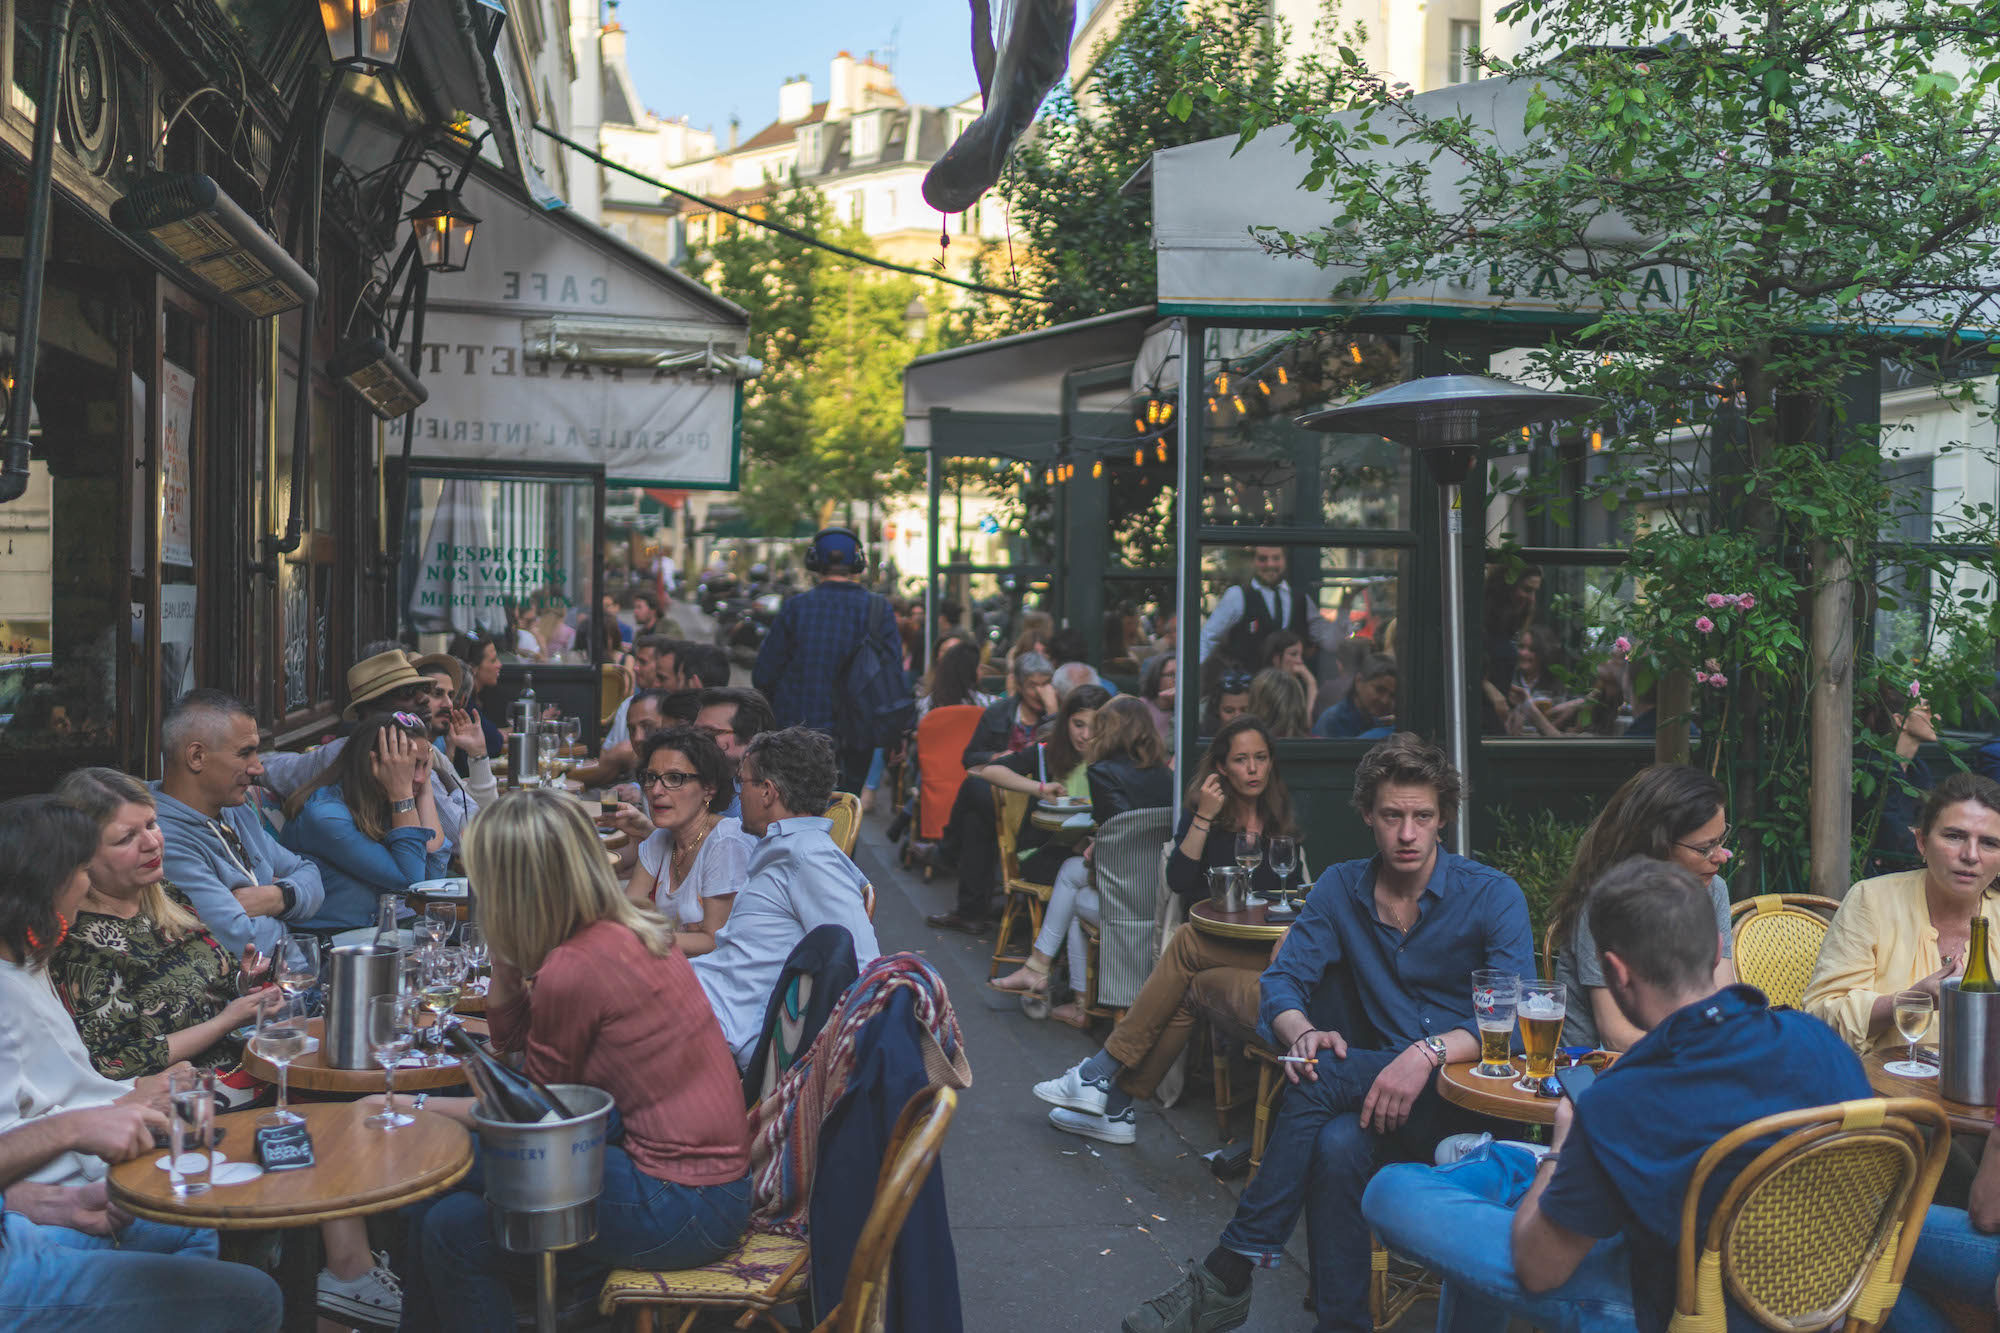 Paris in the summer teems with locals hanging out on cafe terraces, enjoying the weather.